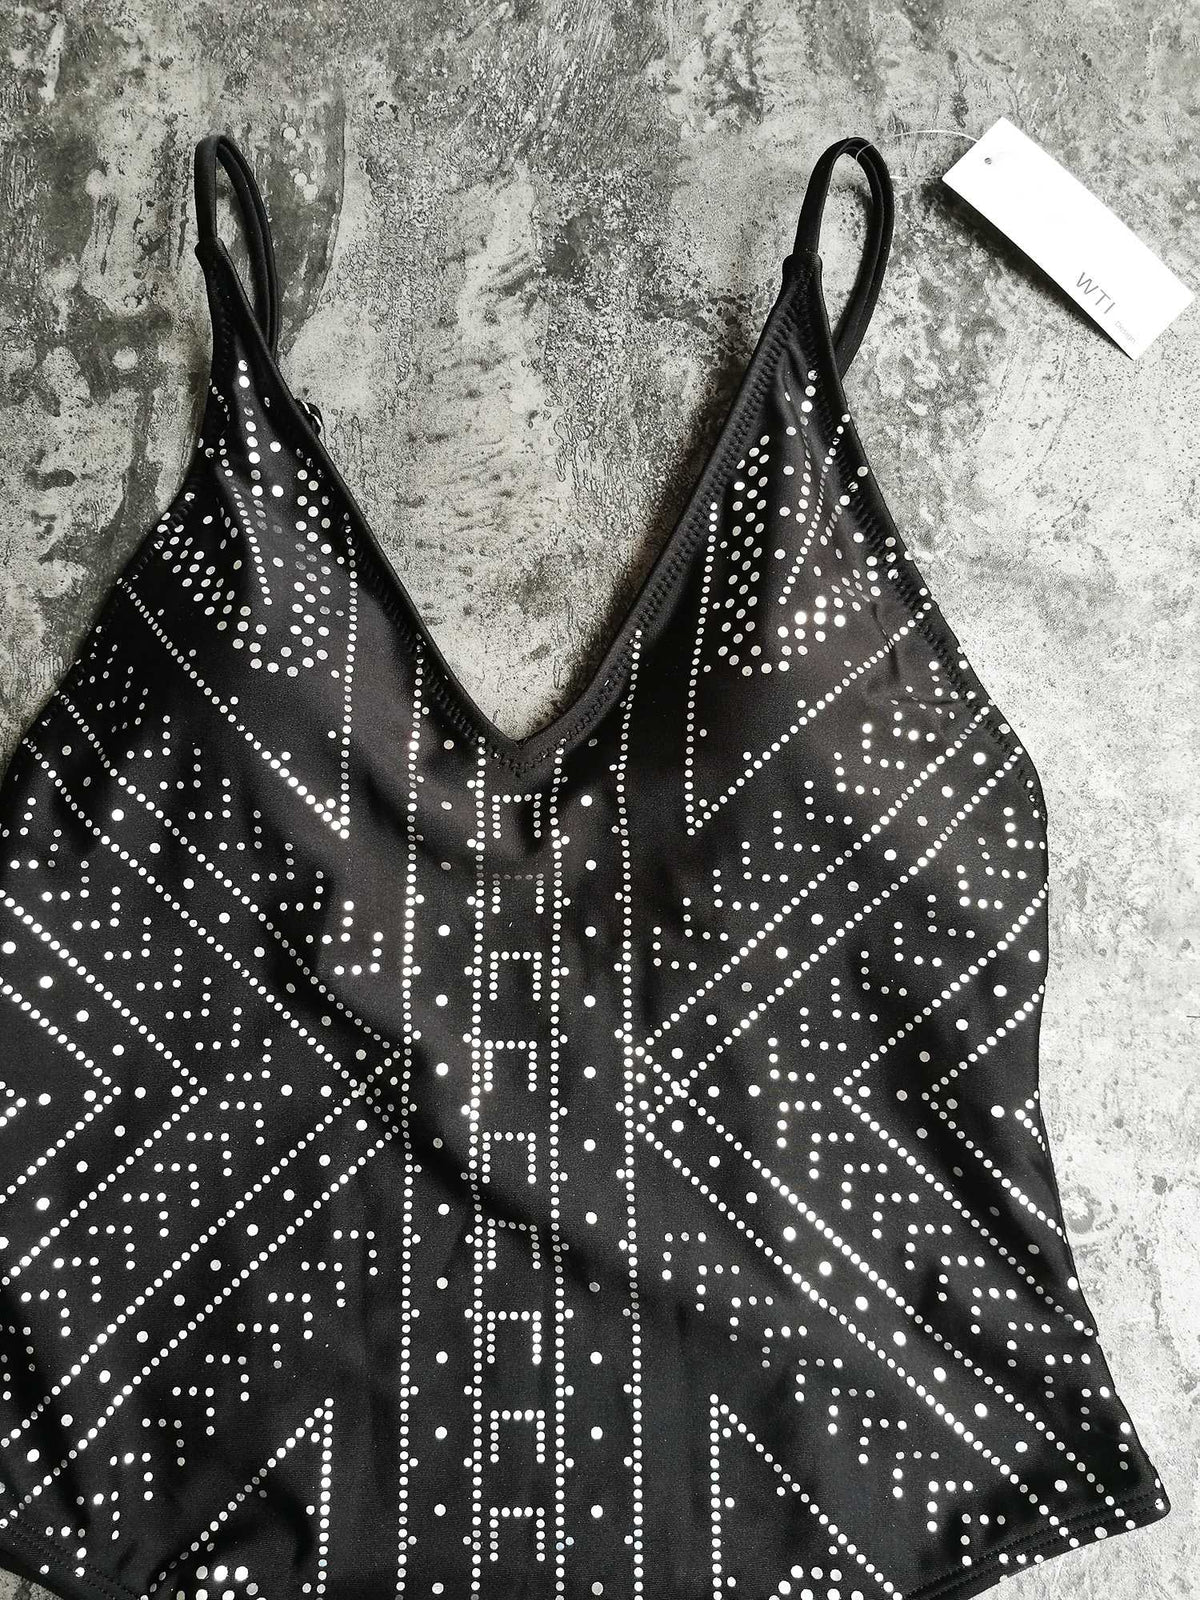 Foil Sliver One Piece Swimsuit - worthtryit.com